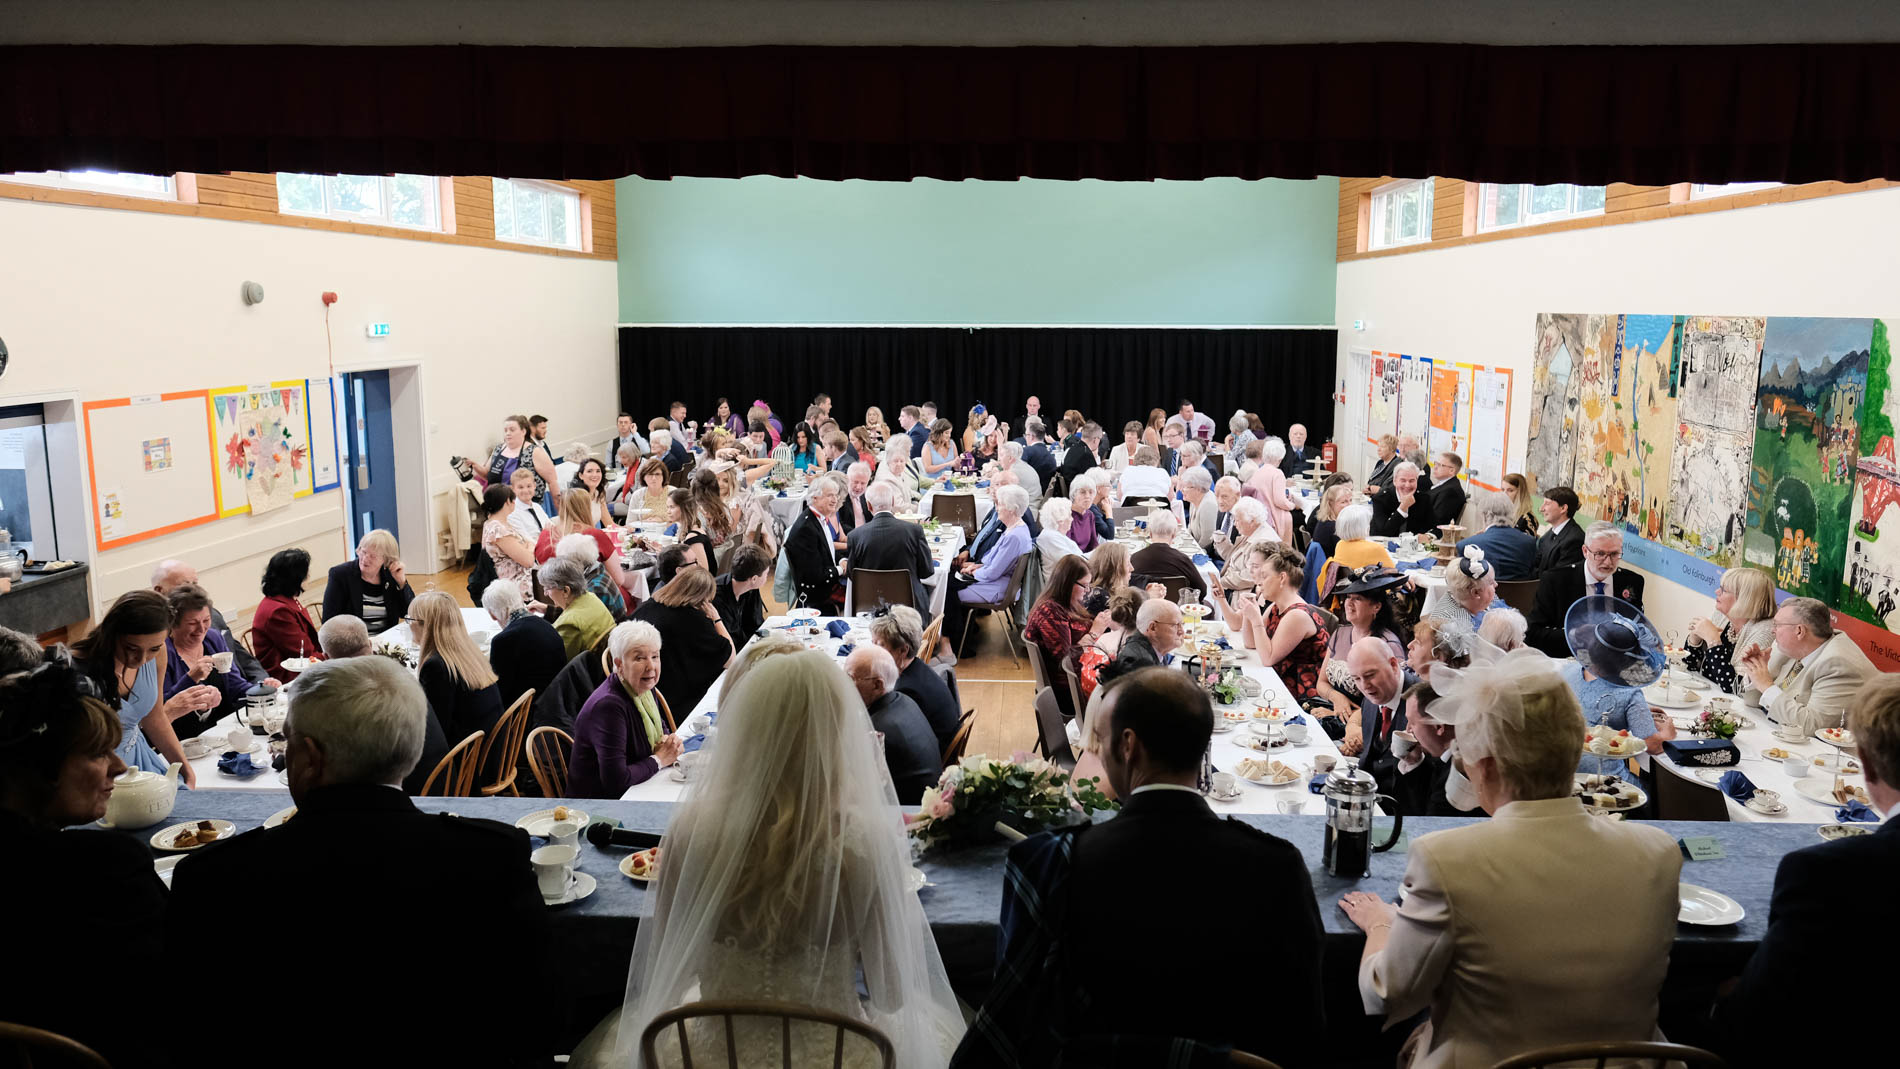 A colour photograph of the church congregation celebrating during an afternoon tea at a wedding at Saint Andrew's Church, Clermiston